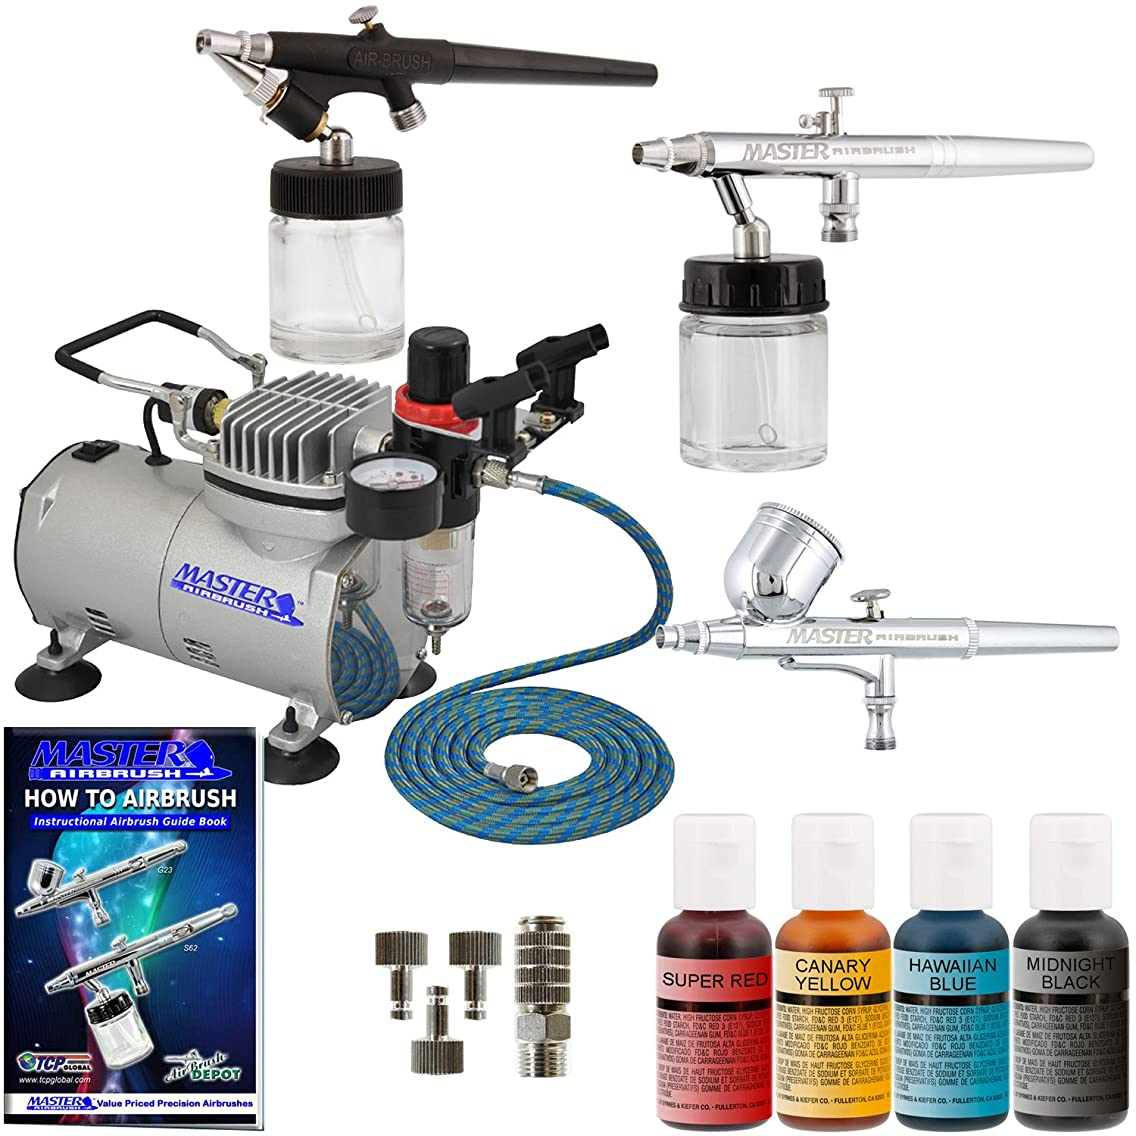 Master Airbrush Premium 3 Airbrush Cake Decorating Kit with G22, S68, E91 Master Airbrushes and TC-20 Air Compressor, 4 Chefmaster Airbrush Food Colors.7 fl oz Bottles